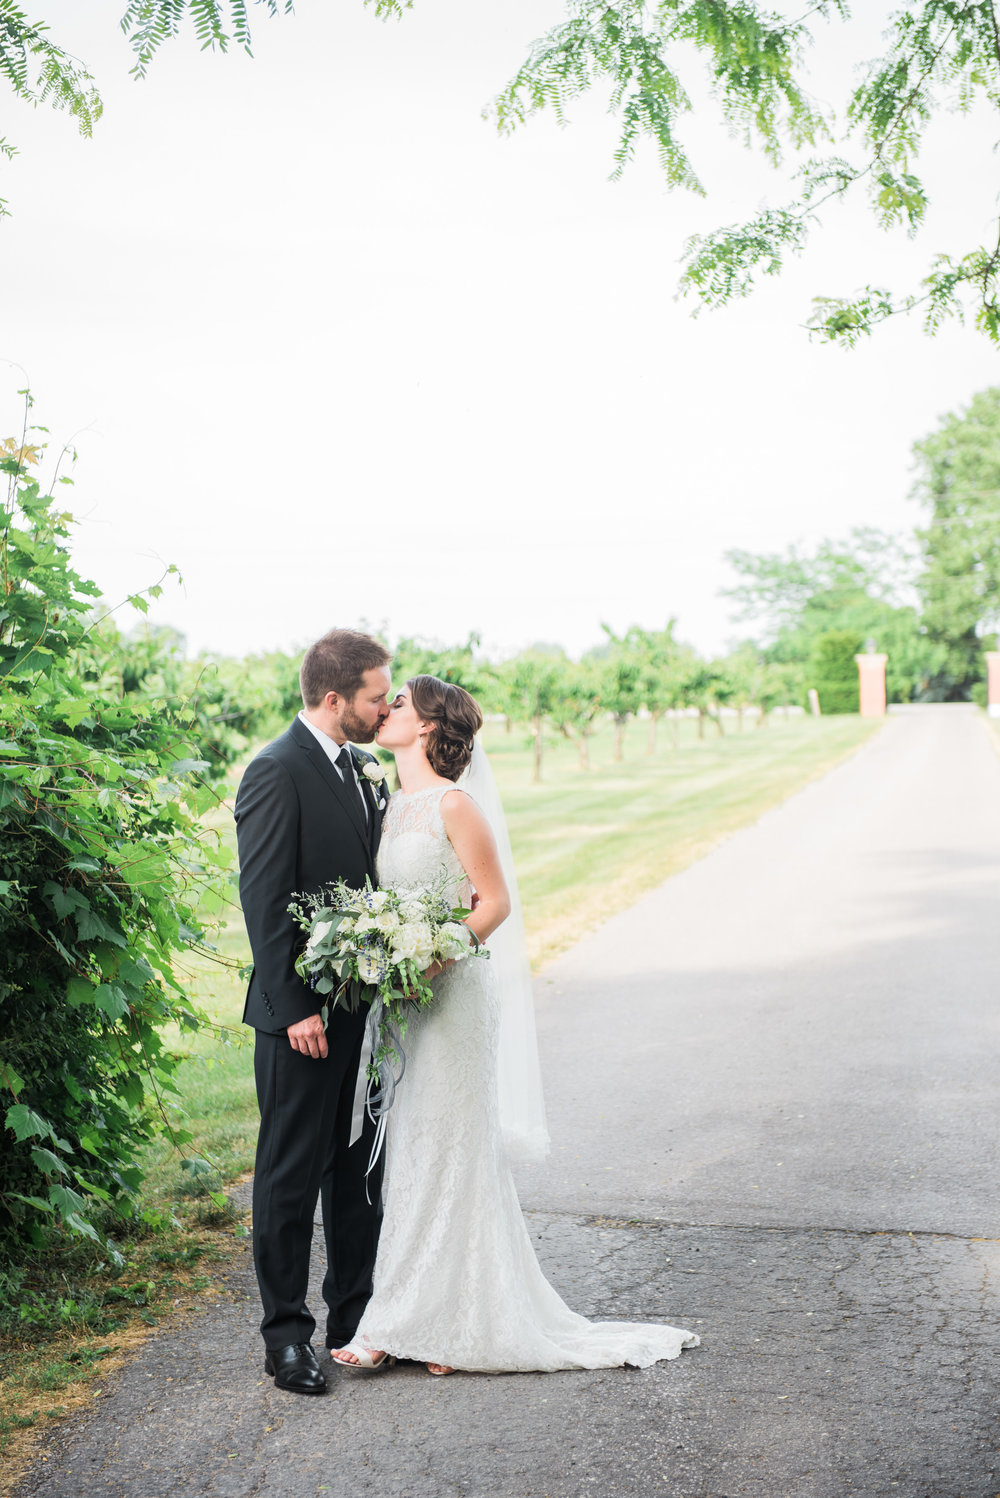 Niagara-Weddings-Honsberger-Estate-photography-by-Love-Always-Photography-038.JPG